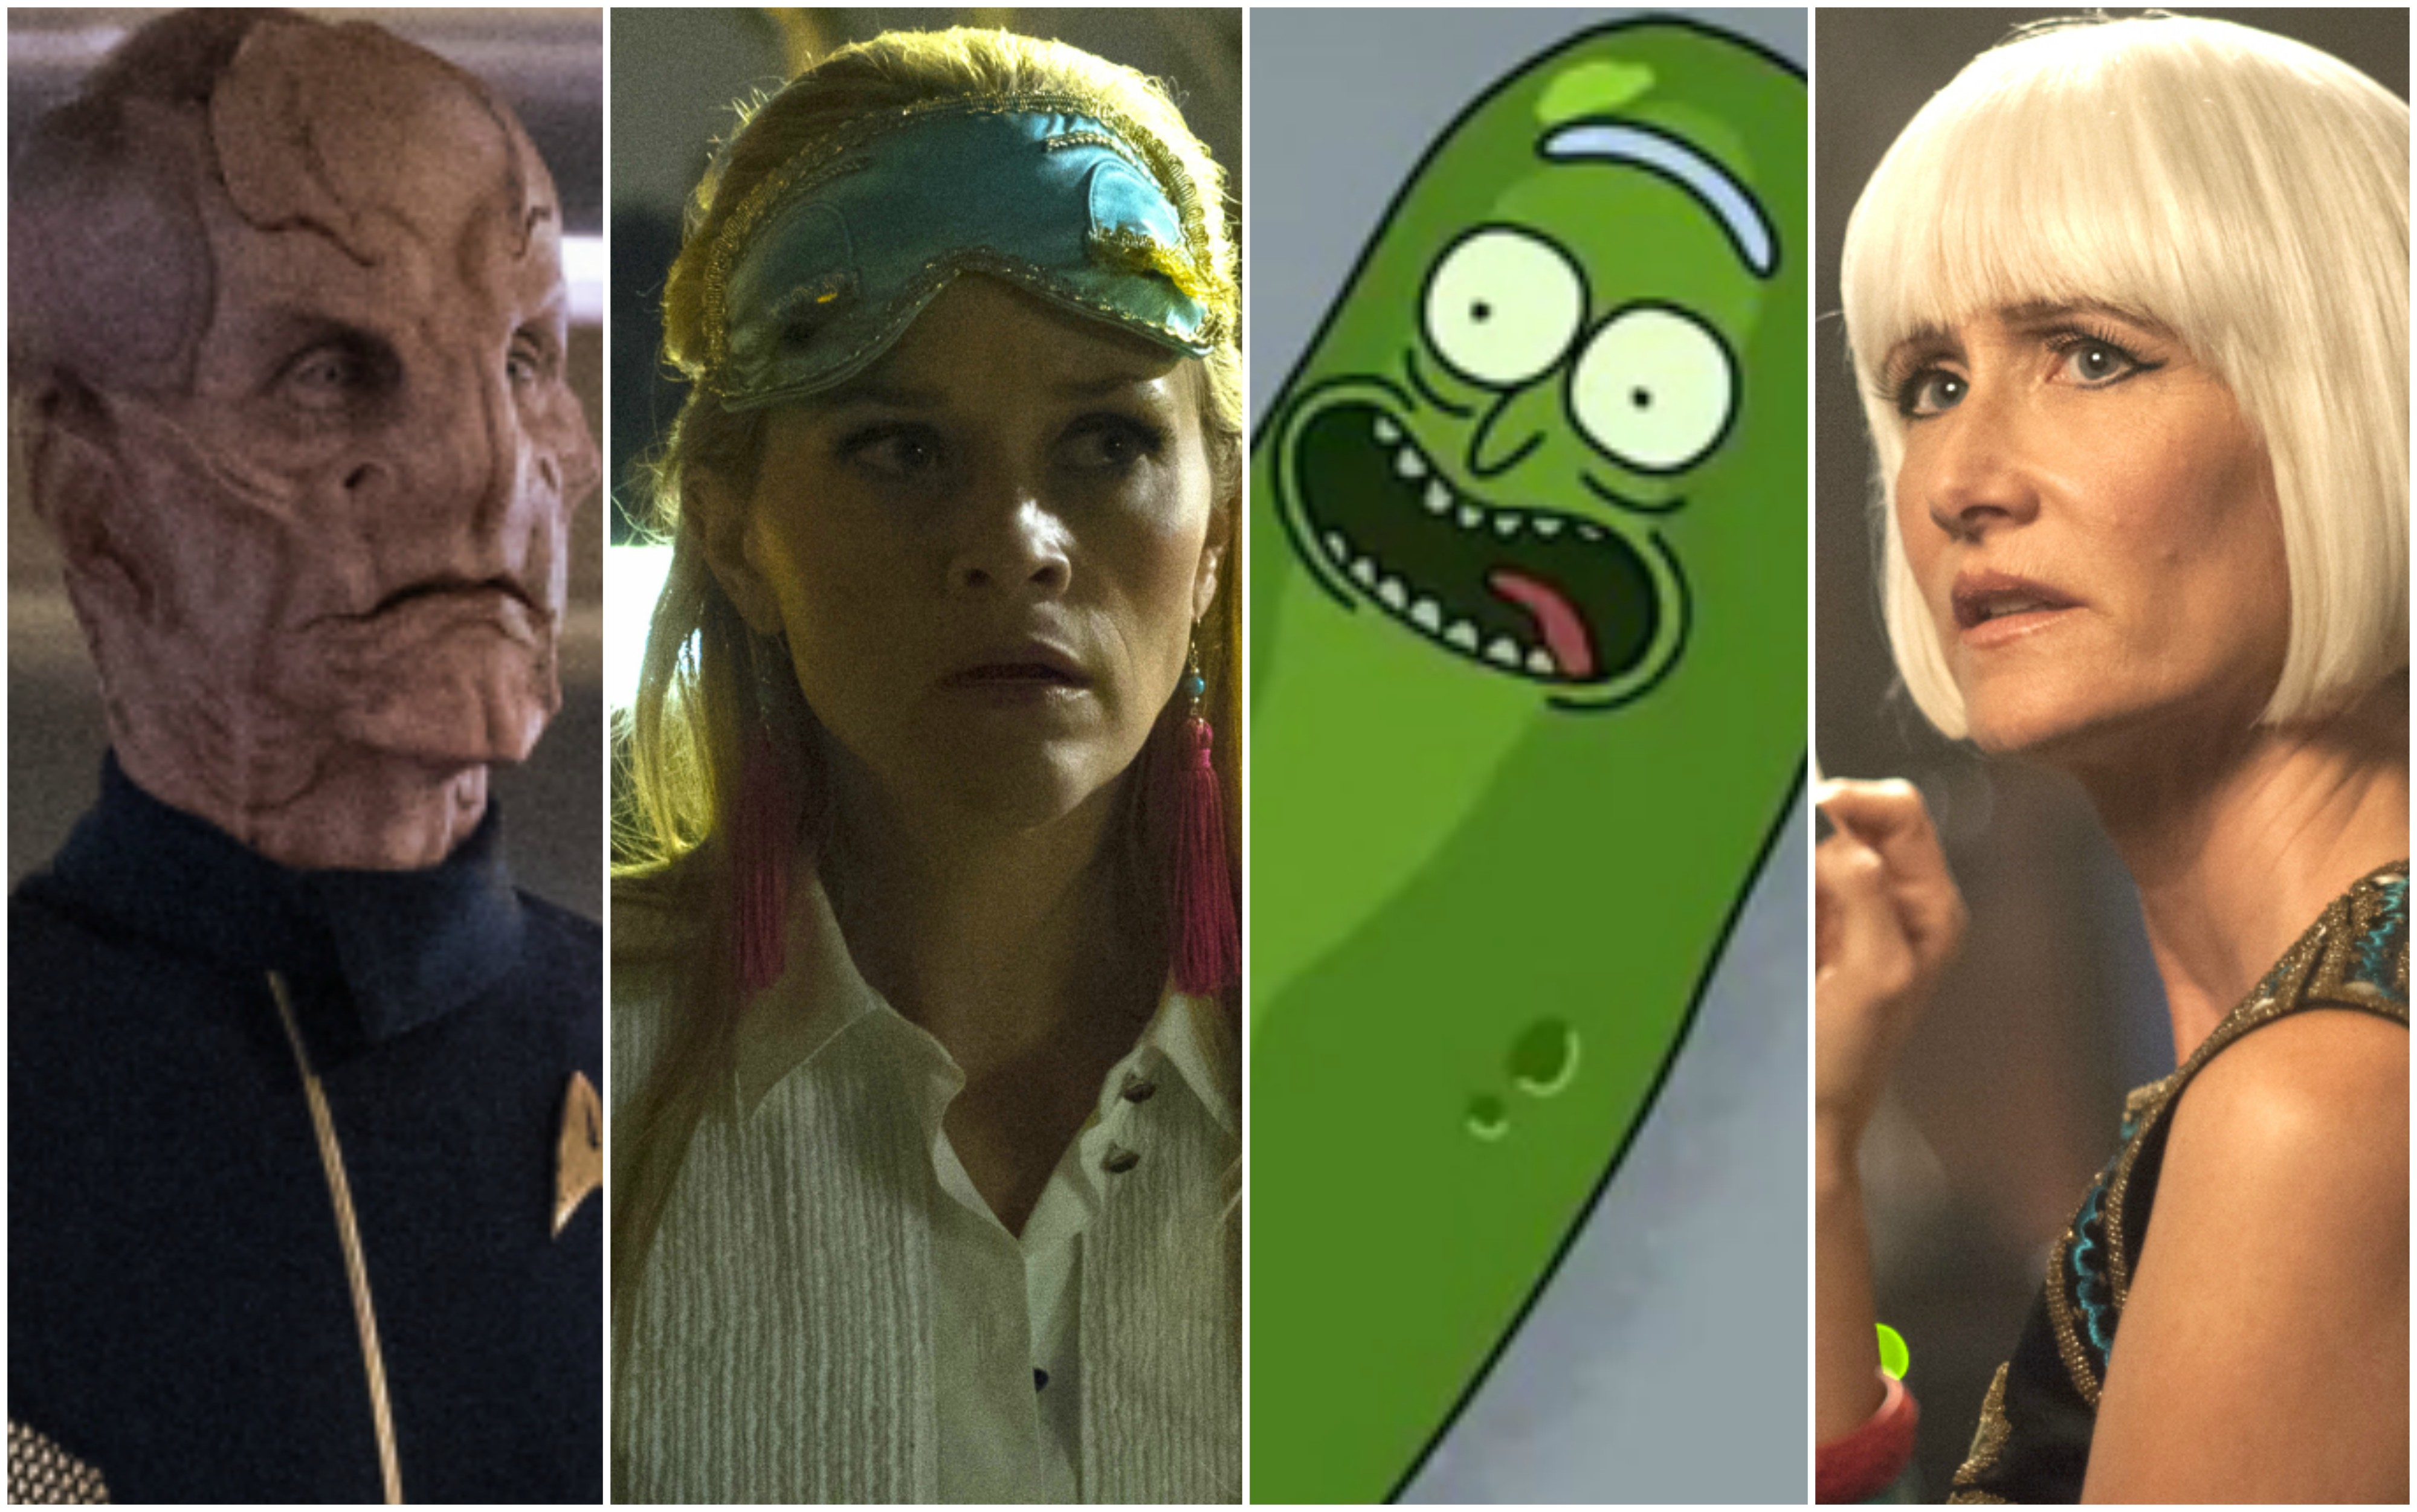 Halloween Costume Ideas From TV Shows | IndieWire